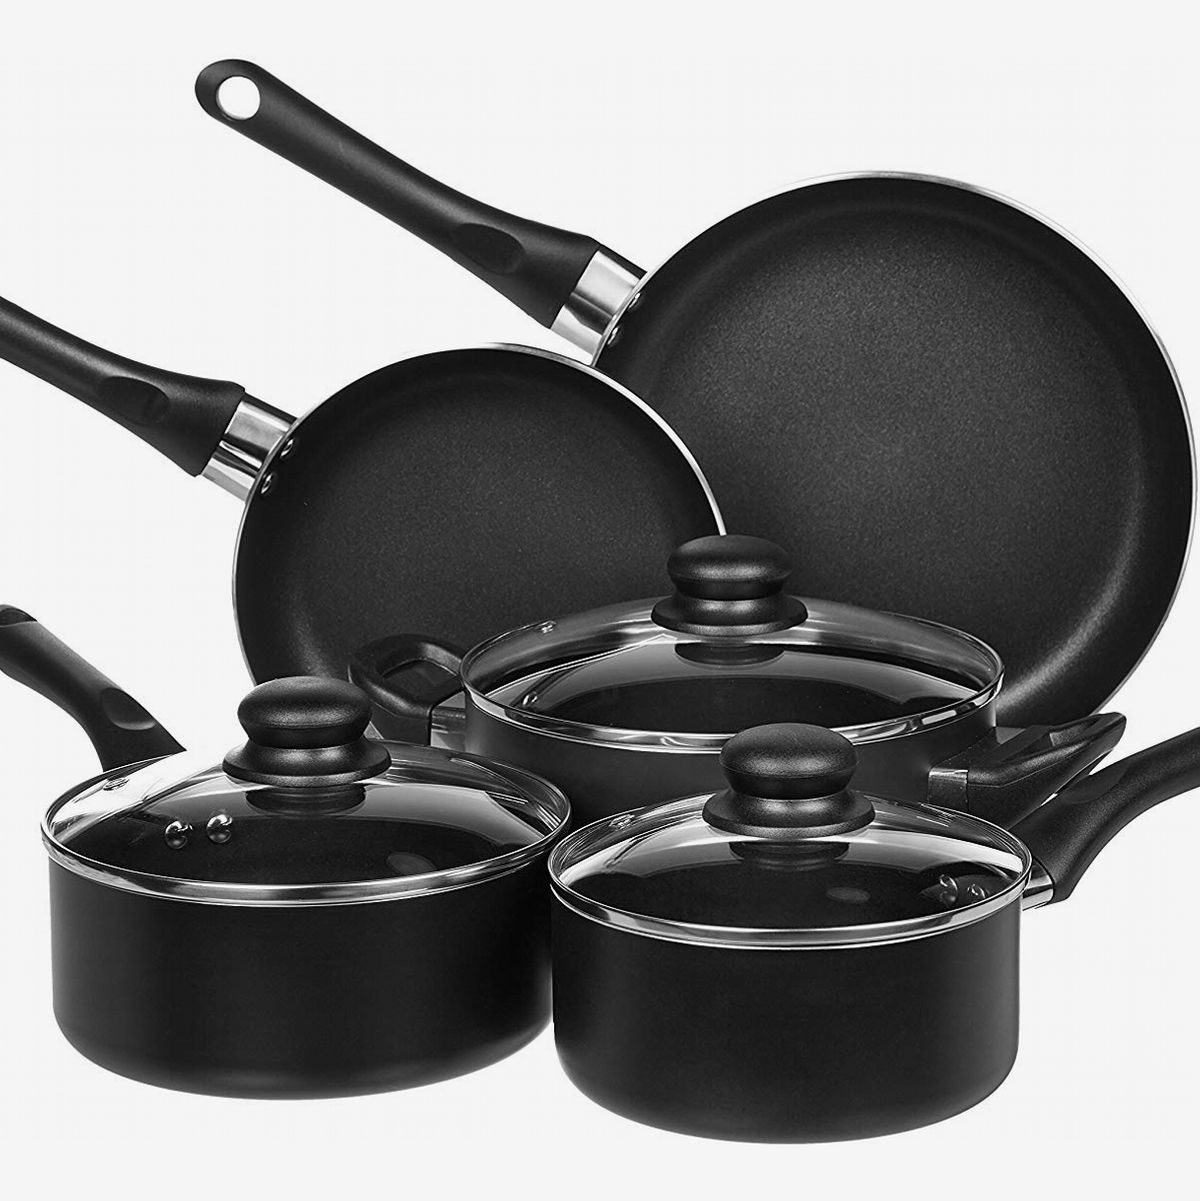 15 Best Cookware Sets 2021 The Strategist